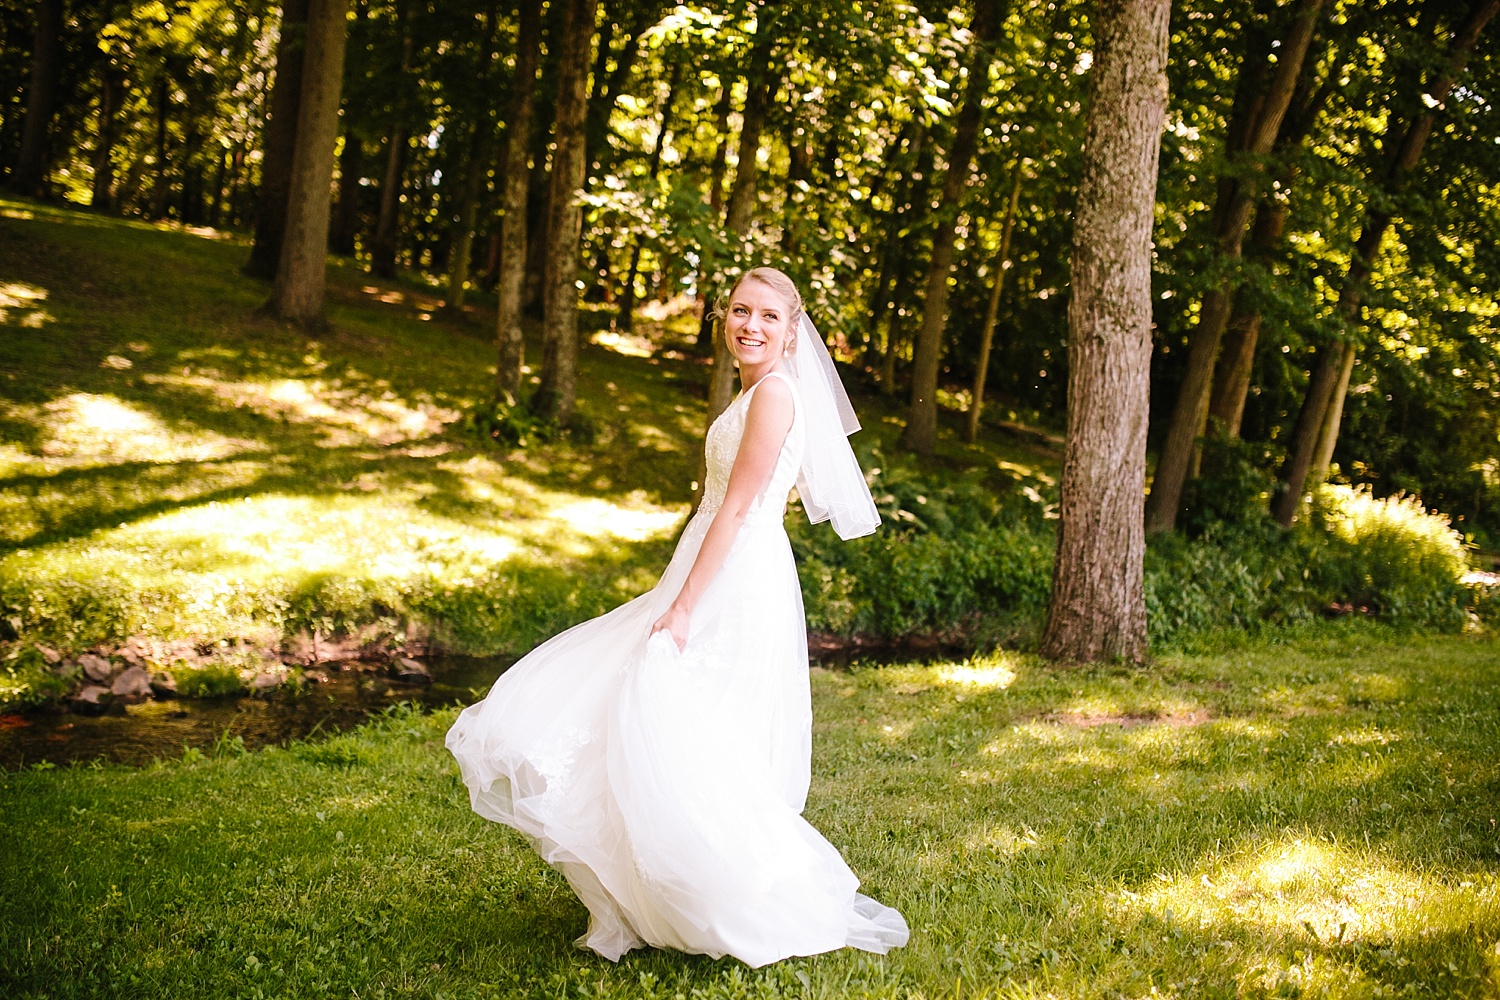 carleyauston_actionimpact_elverson_lancaster_camp_wedding038.jpg